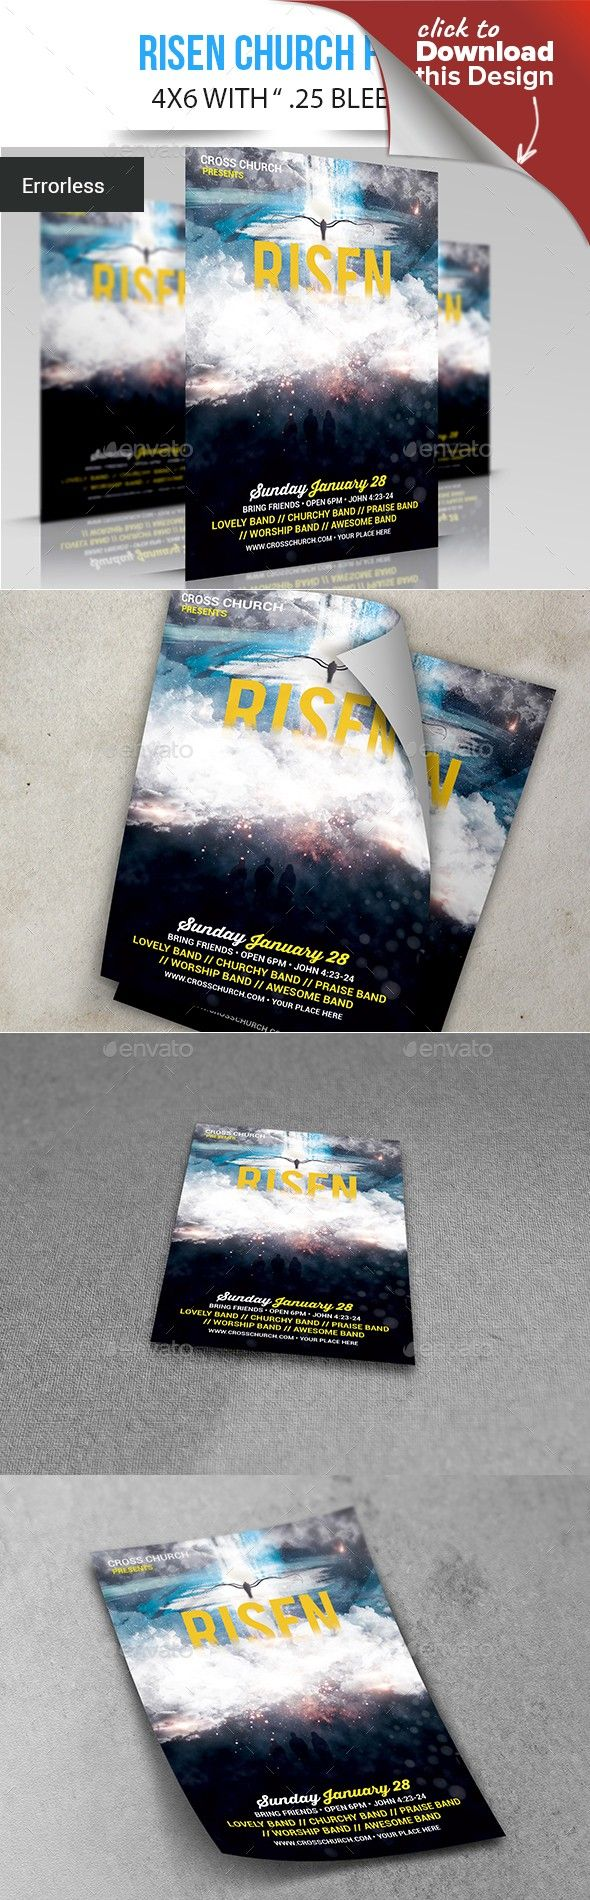 Risen | Flyer layout, Print fonts and Template